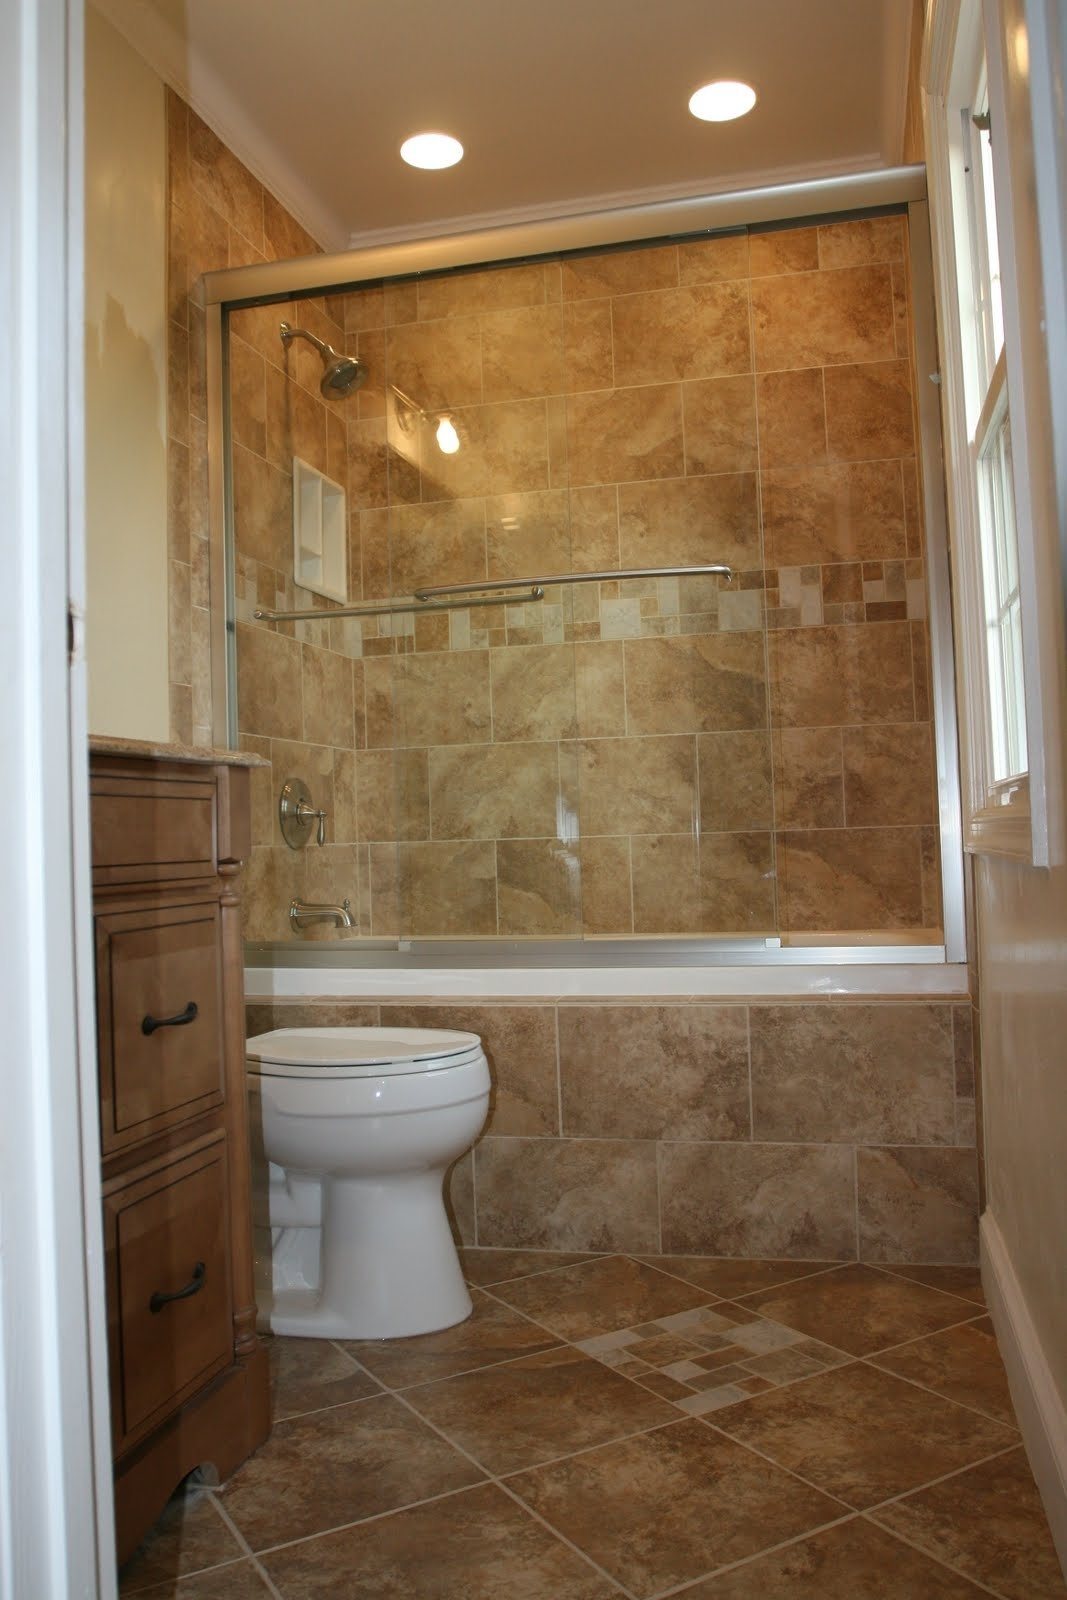 10 Fantastic Ideas For Remodeling A Small Bathroom excellent ideas for remodeling a small bathroom space top ideas 2835